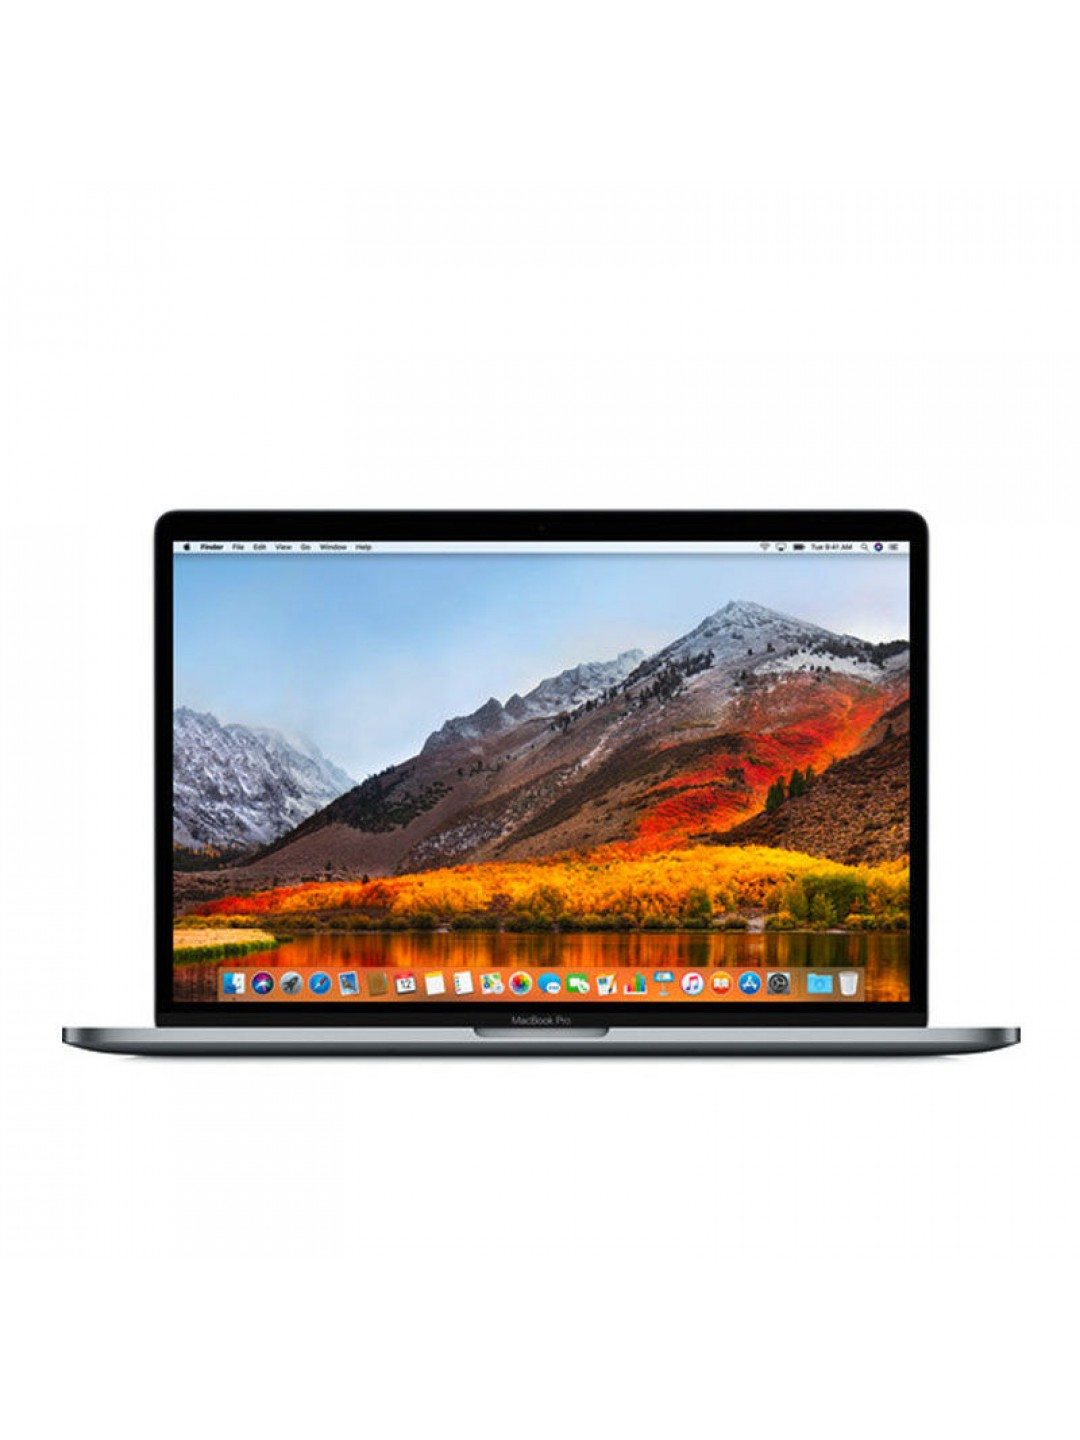 Laptop Apple Macbook Pro Touch Bar 2018 MR9Q2 13.3 inch/2.3GHz quad-core Intel Core i5/8GB/256GB/Intel Iris Plus Graphics 655